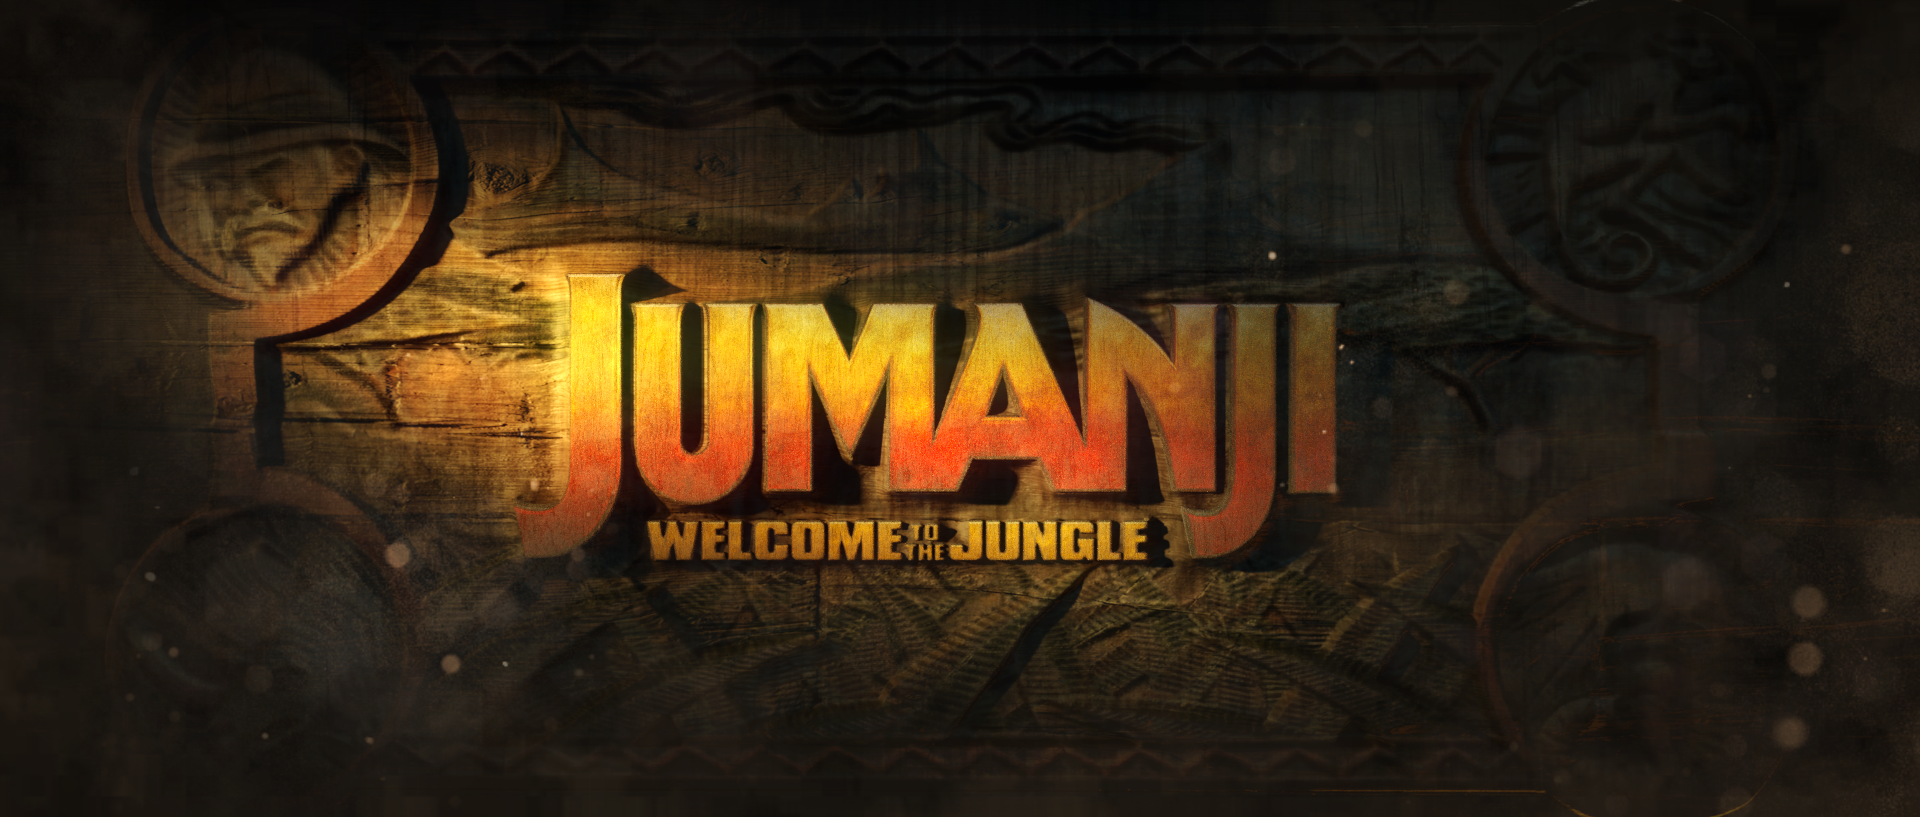 Jumanji_MT_Wood_v1.png